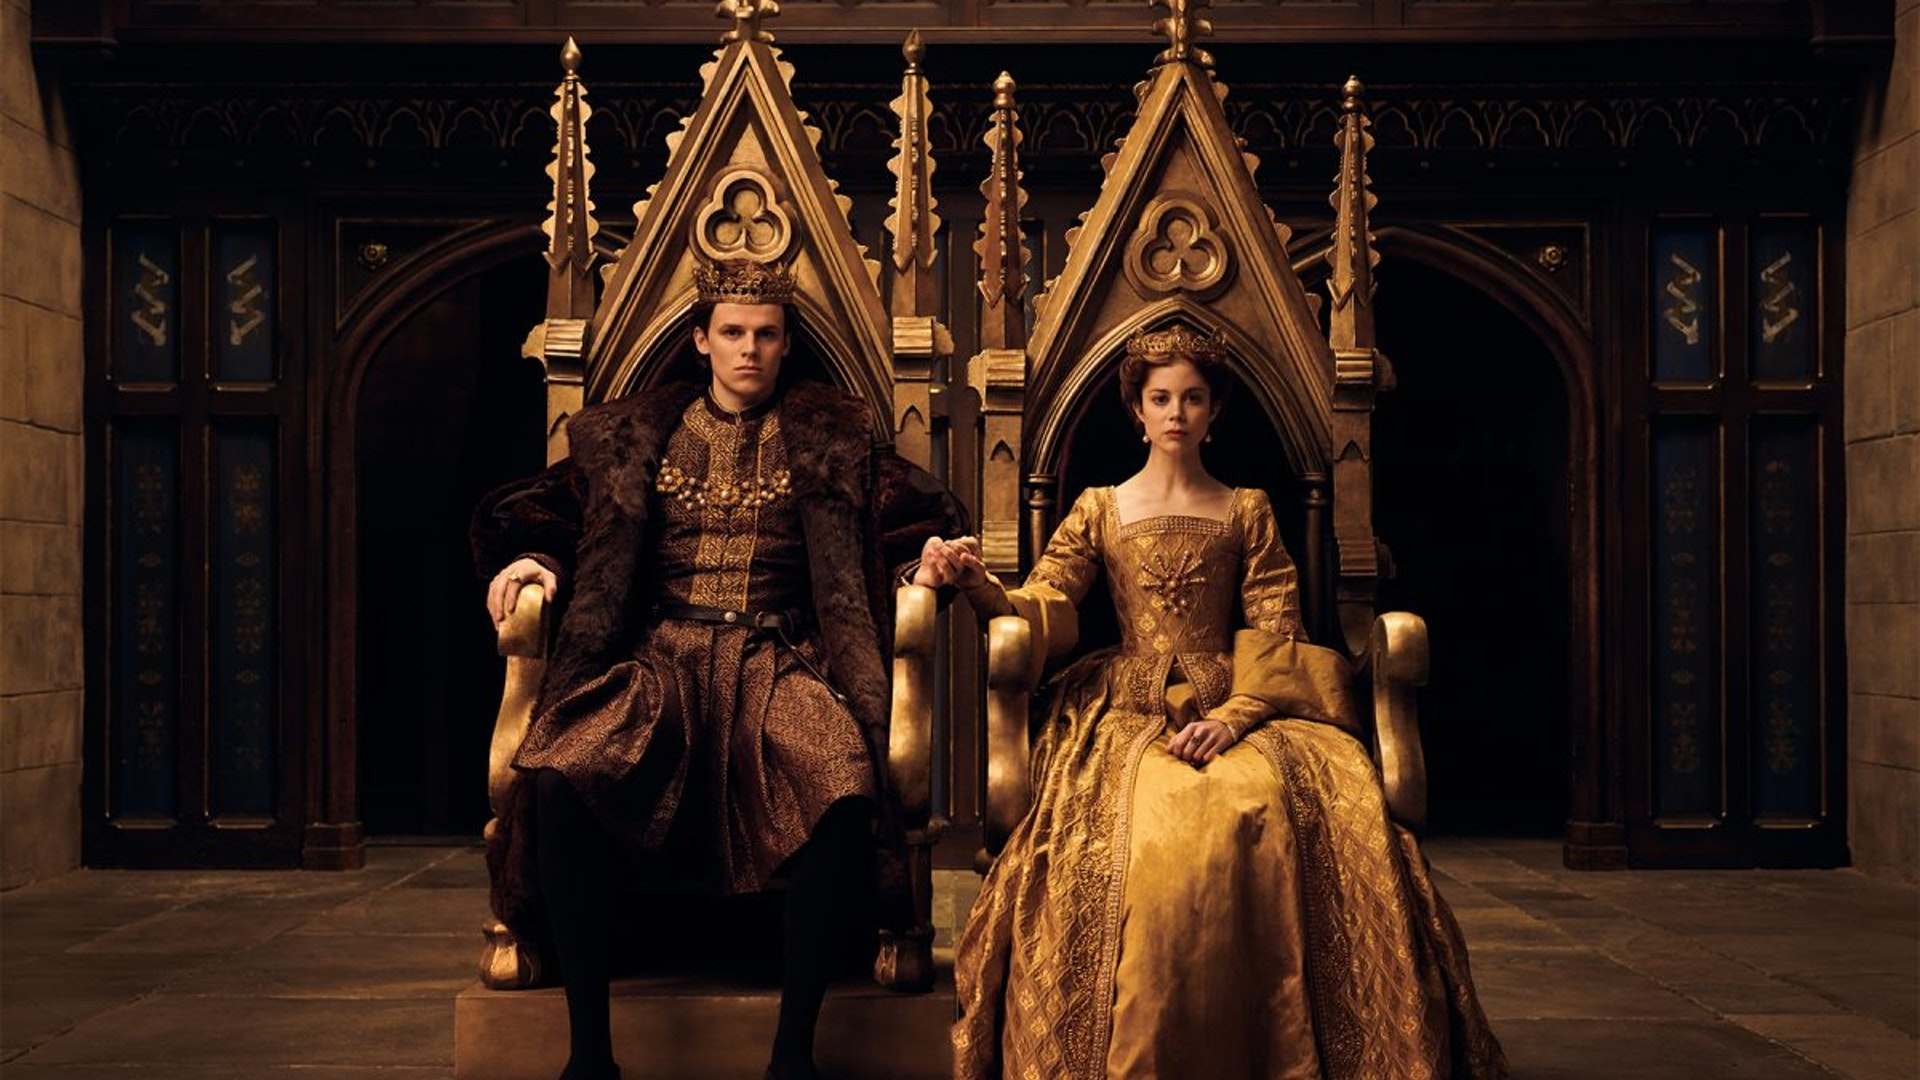 henry-and-cathering-on-thrones-the-spanish-princess-season-2-1200x800